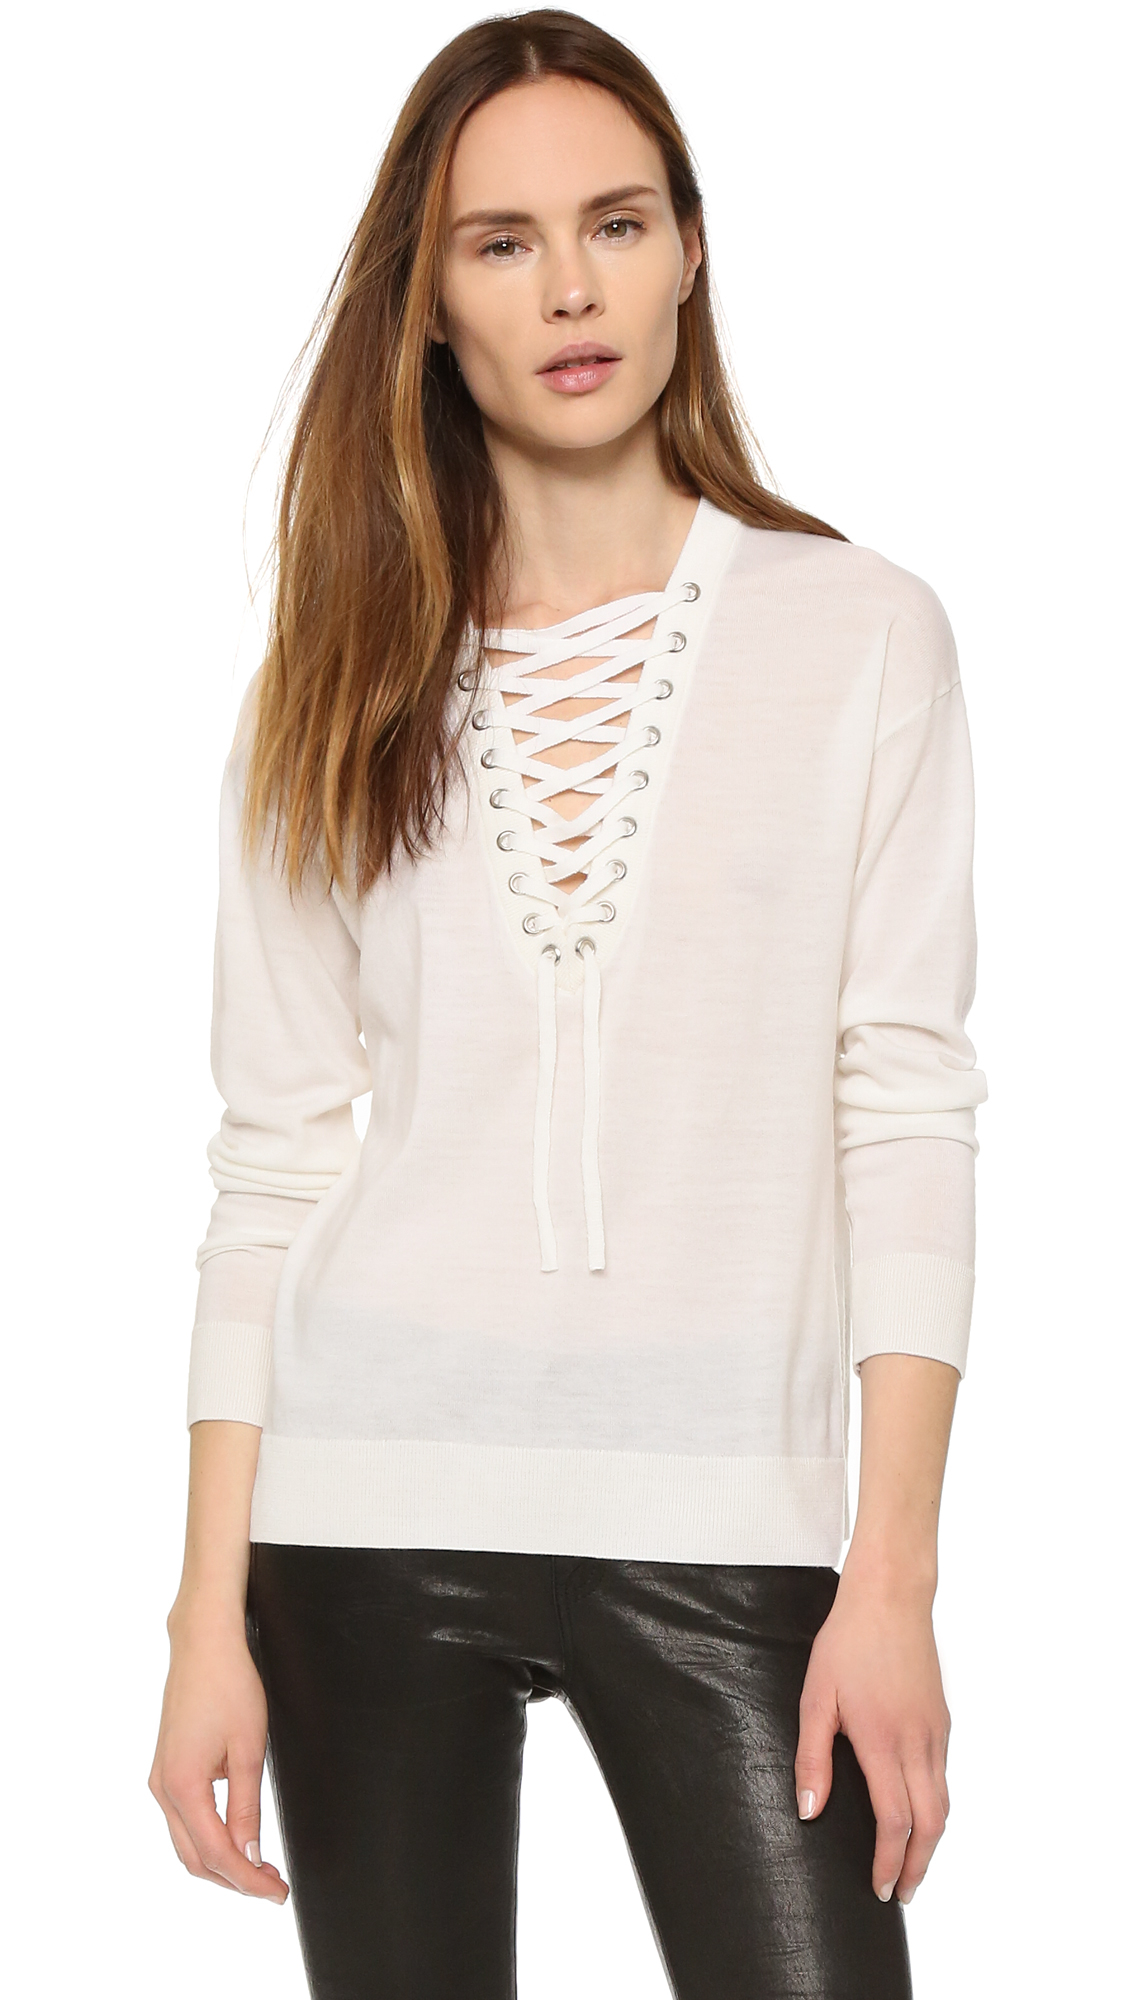 f81794b45f Lyst - The Kooples Lace Up Merino Top in White